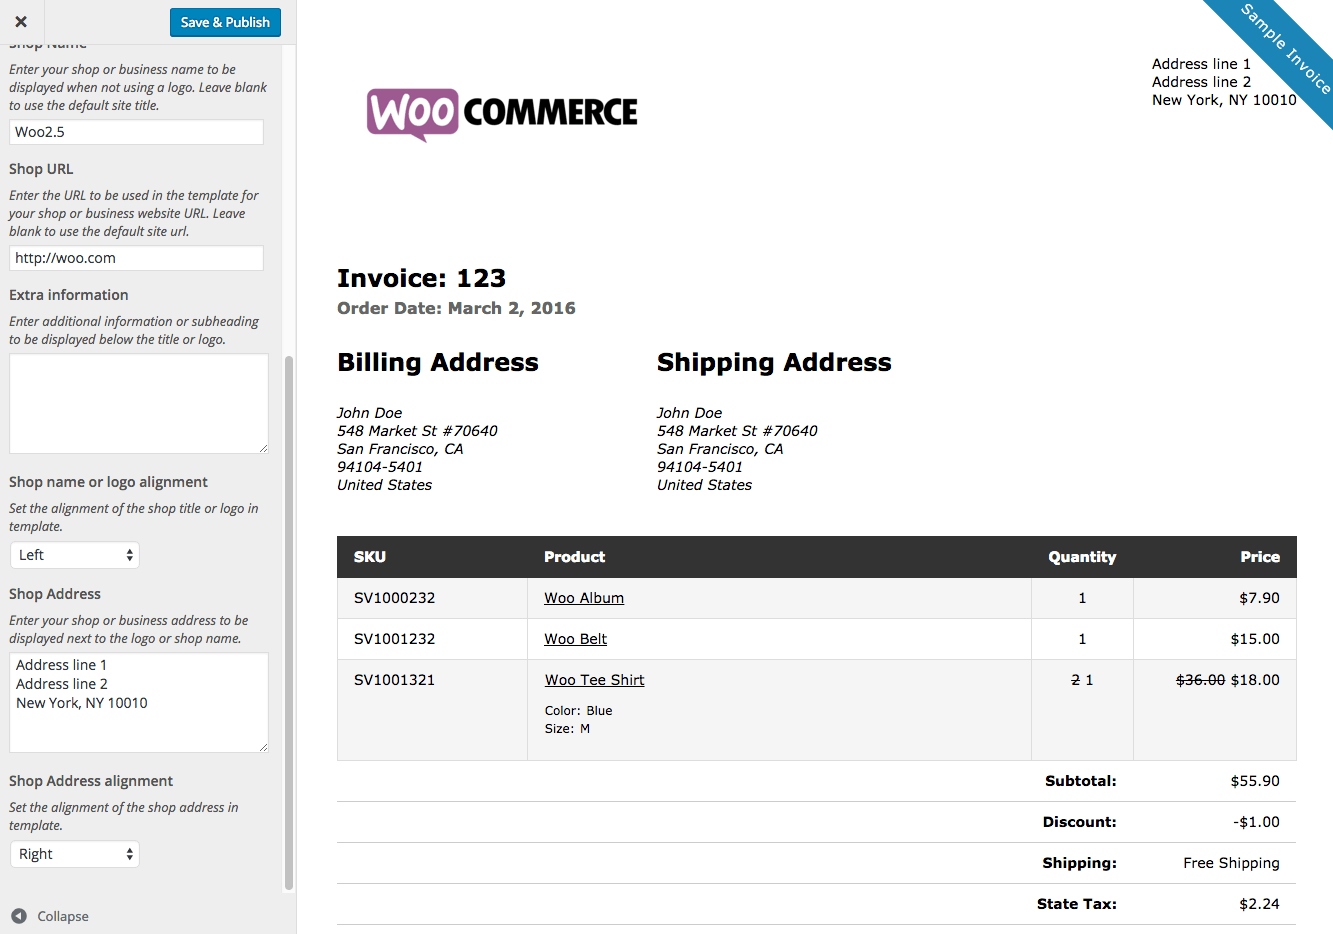 Maidofhonortoastus  Fascinating Woocommerce Print Invoices Amp Packing Lists  Woocommerce Docs With Fair Woocommerce Print Invoices  Packing Lists Customizer With Cute Free Invoice Service Also Restaurant Invoice Template In Addition Invoice Templates For Pages And Nissan Rogue Invoice As Well As Non Commercial Invoice Additionally Templates Invoice From Docswoocommercecom With Maidofhonortoastus  Fair Woocommerce Print Invoices Amp Packing Lists  Woocommerce Docs With Cute Woocommerce Print Invoices  Packing Lists Customizer And Fascinating Free Invoice Service Also Restaurant Invoice Template In Addition Invoice Templates For Pages From Docswoocommercecom